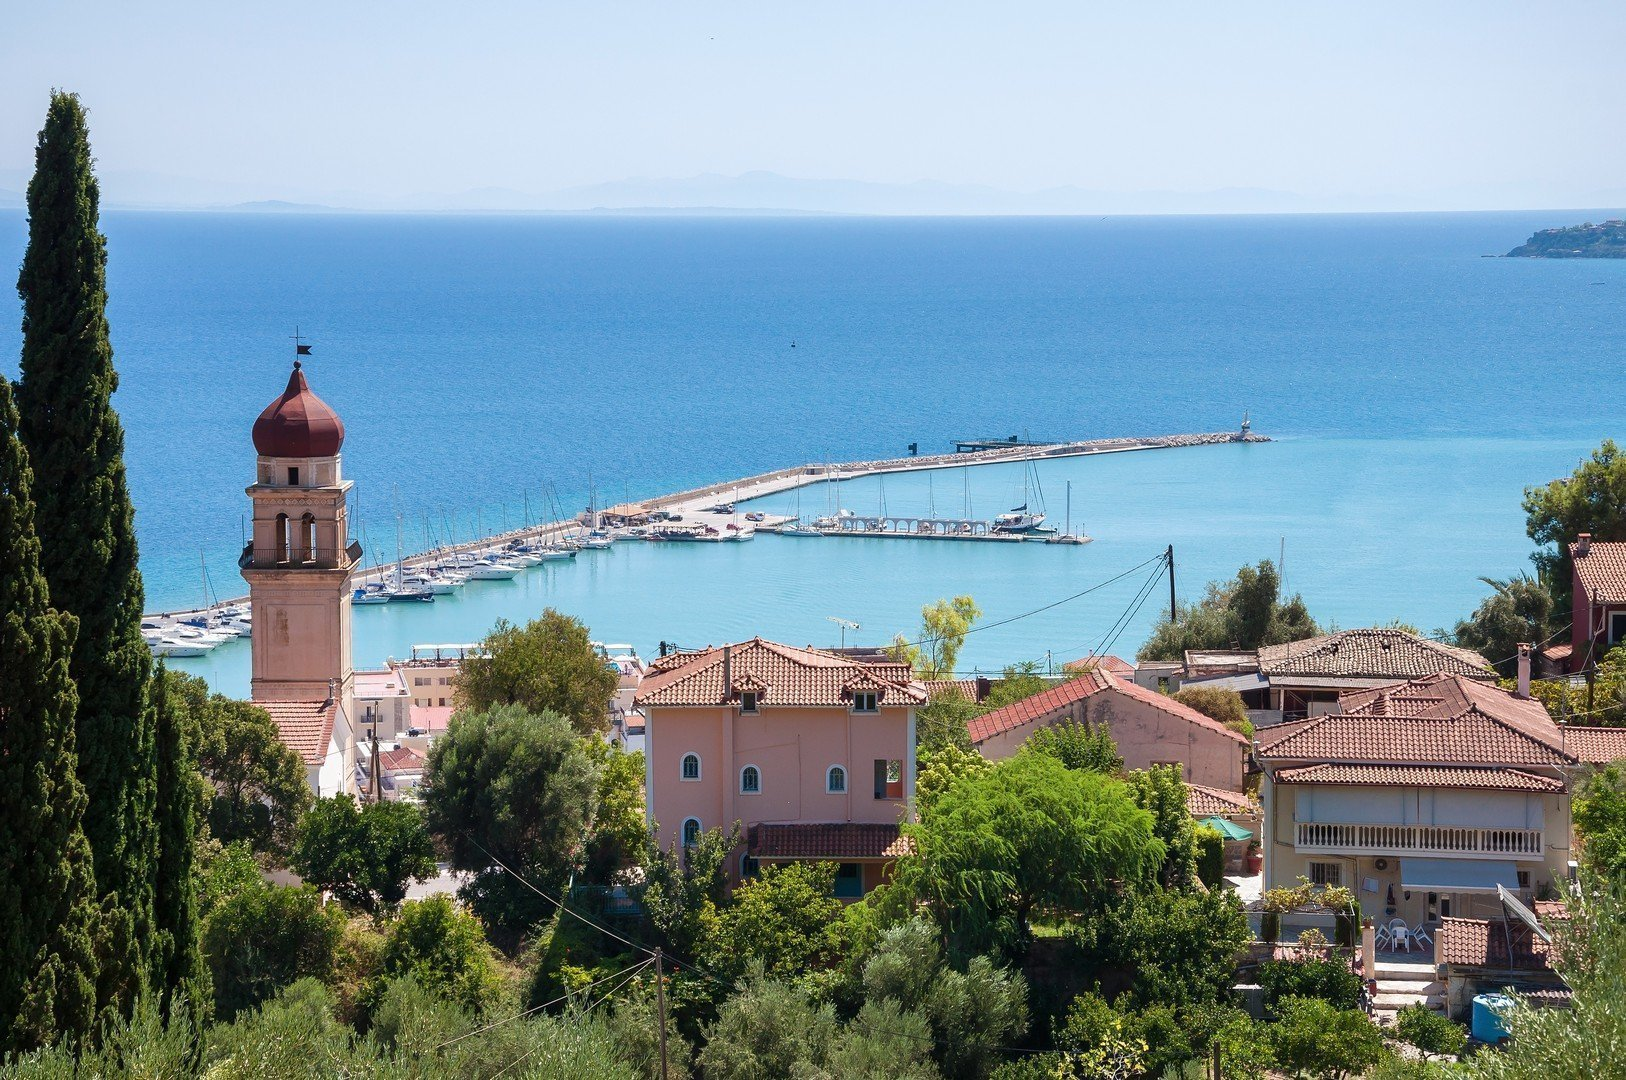 View of port in Zante town, capital city of Zakynhtos, Greece shutterstock_382973059